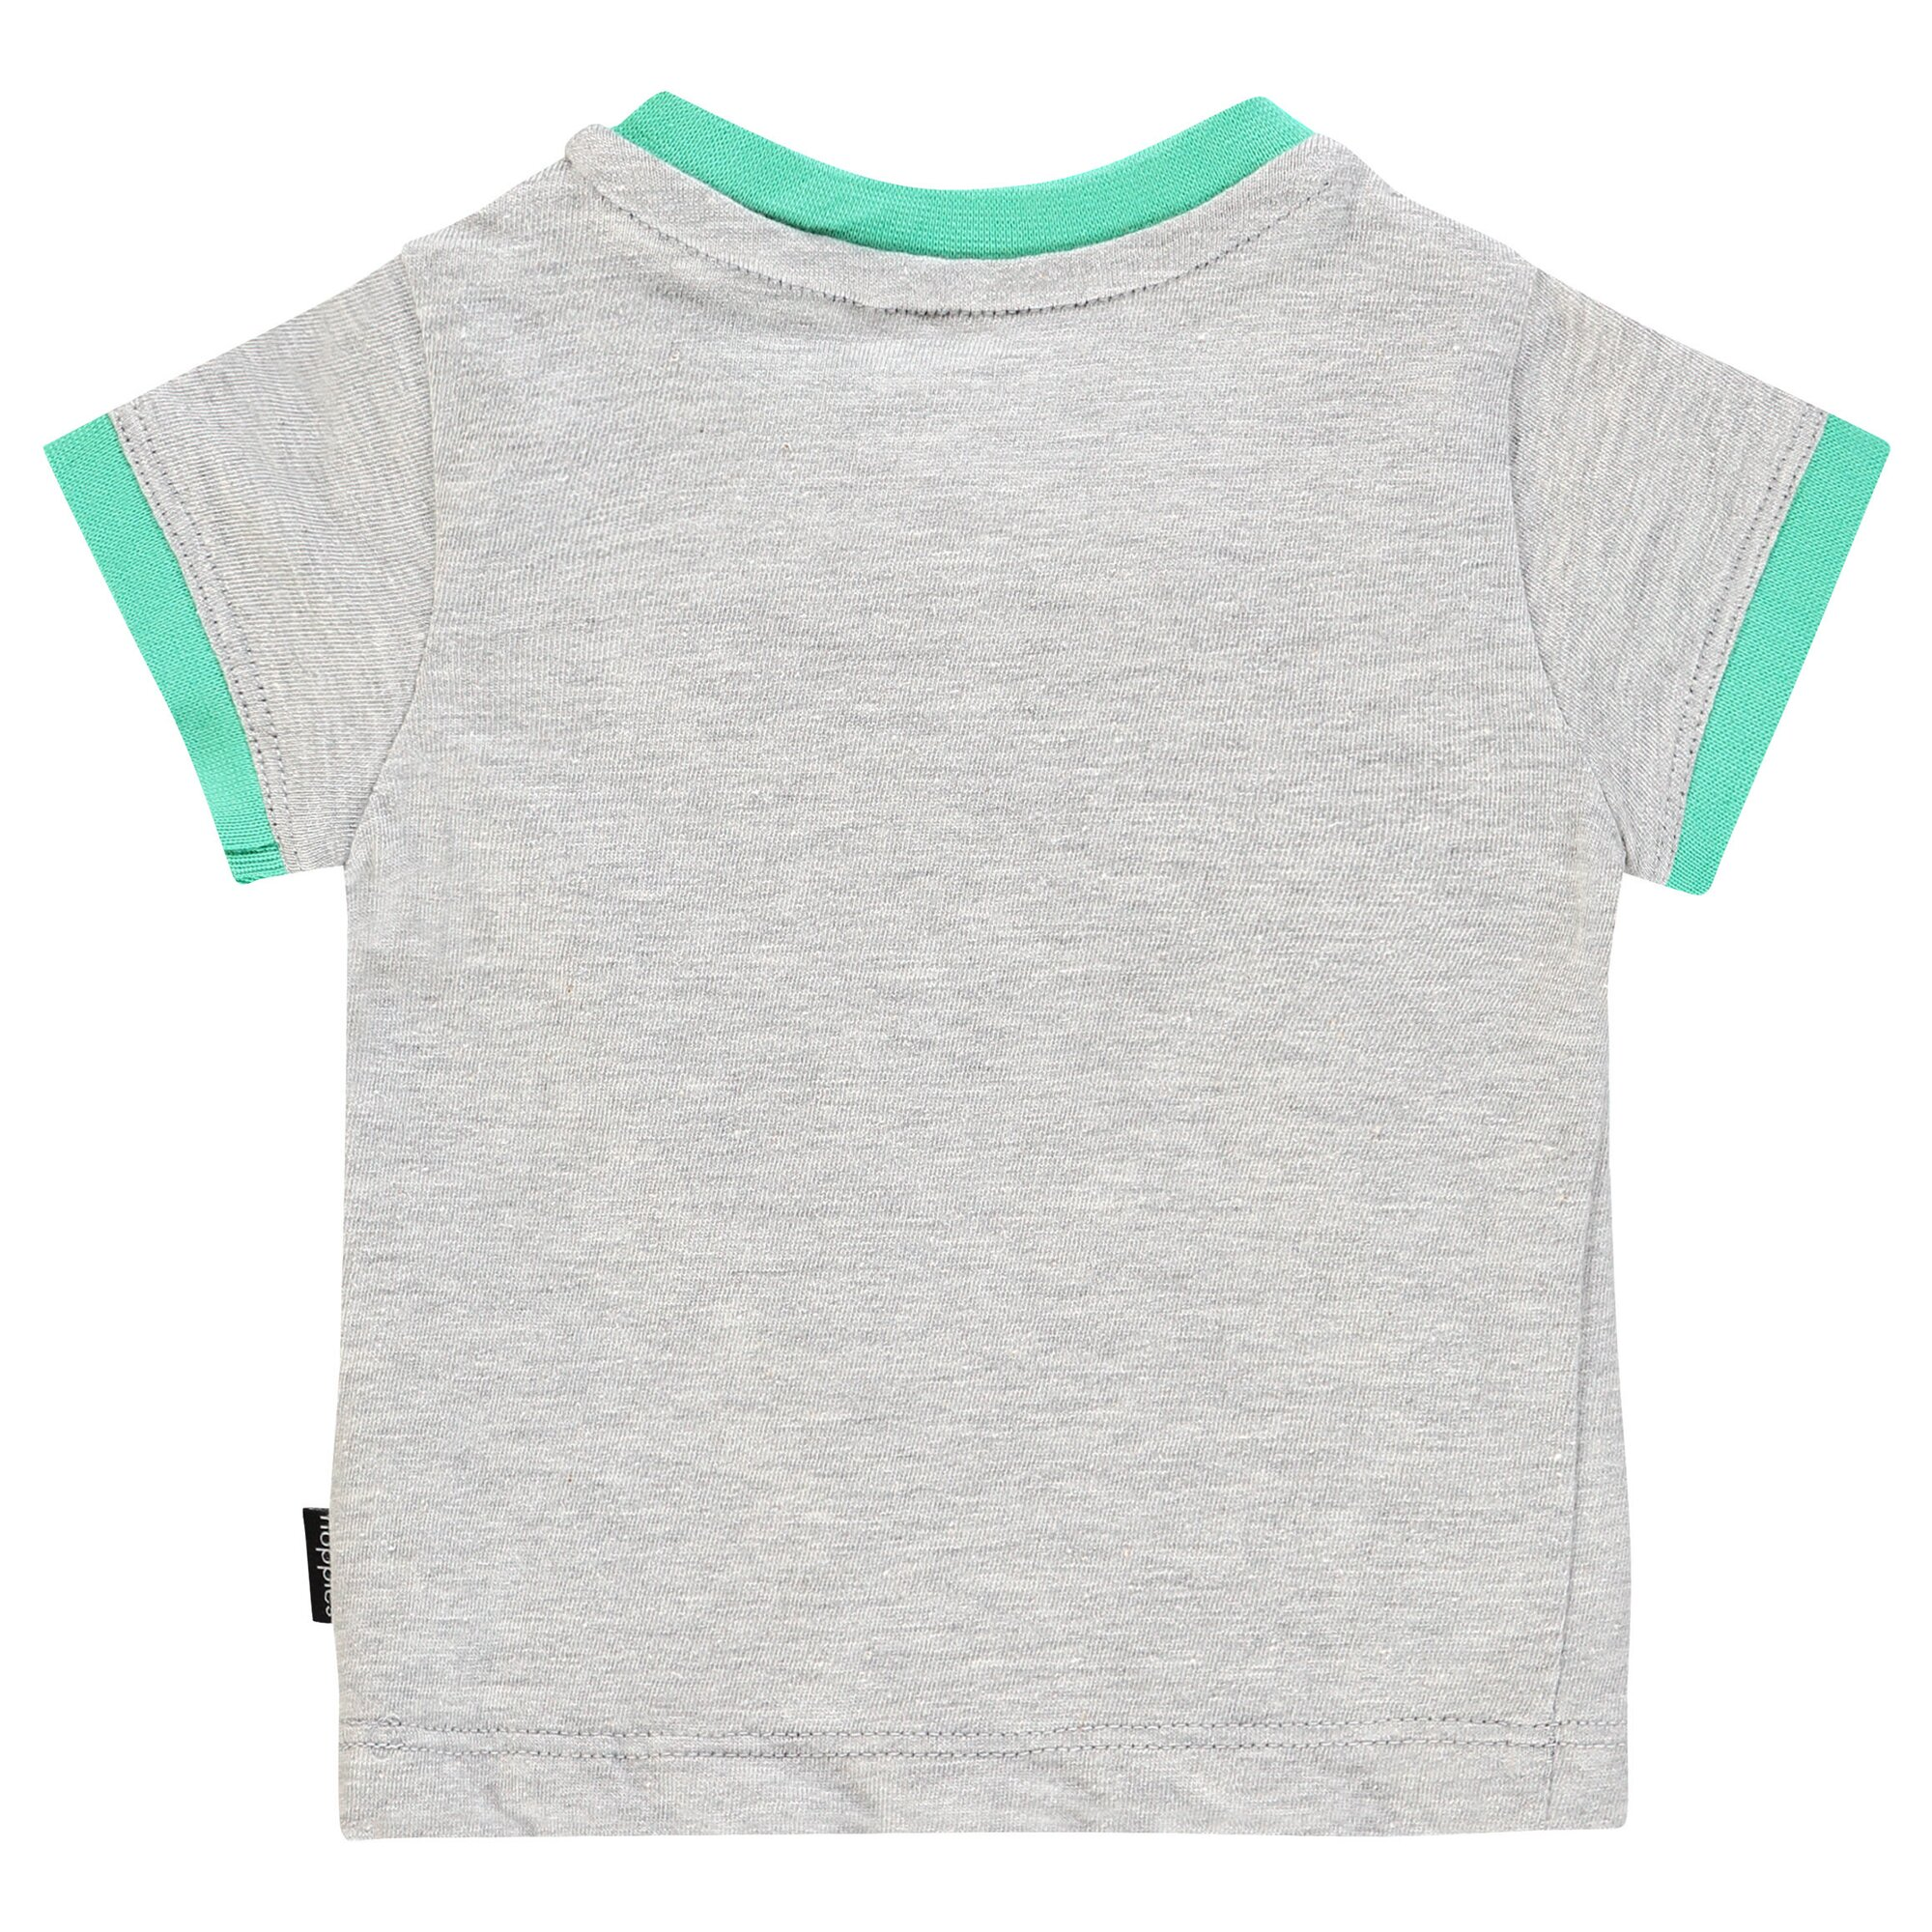 noppies-t-shirt-summerfield, 14.99 EUR @ babywalz-de